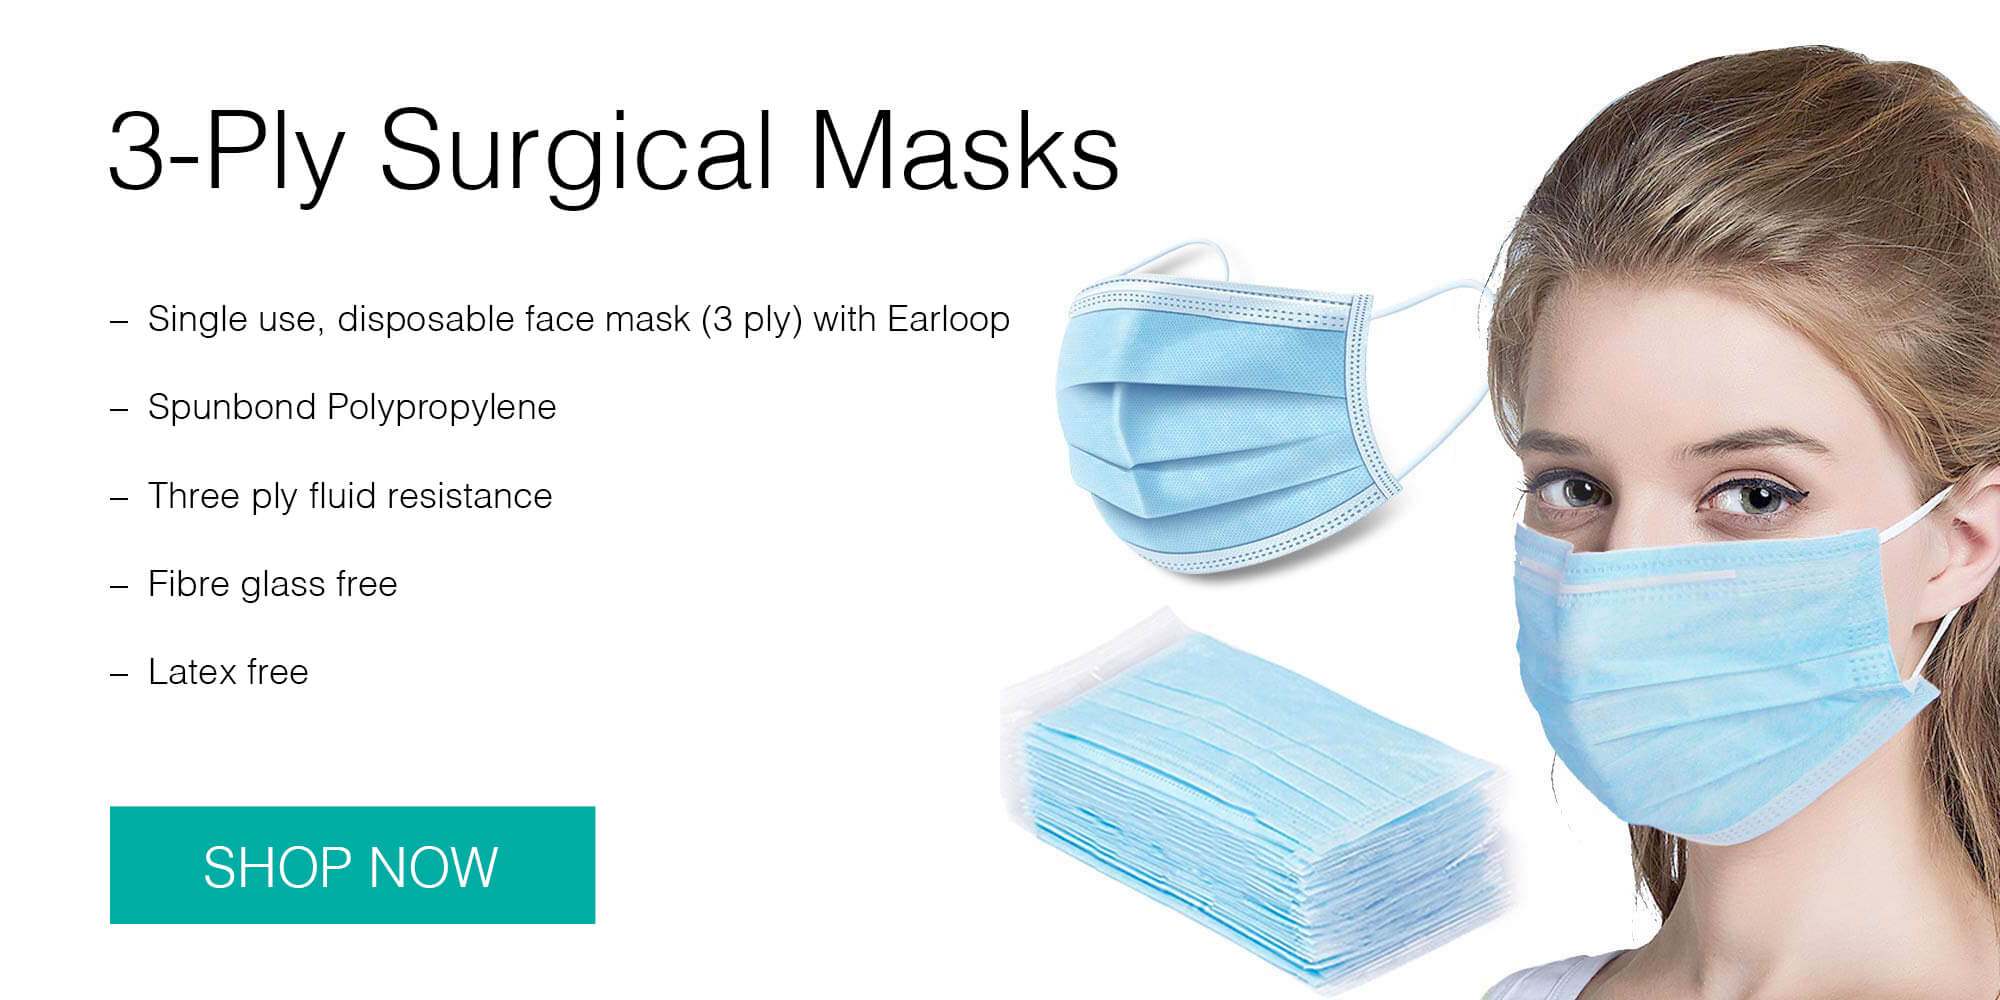 Buy 3-Ply Surgical Masks